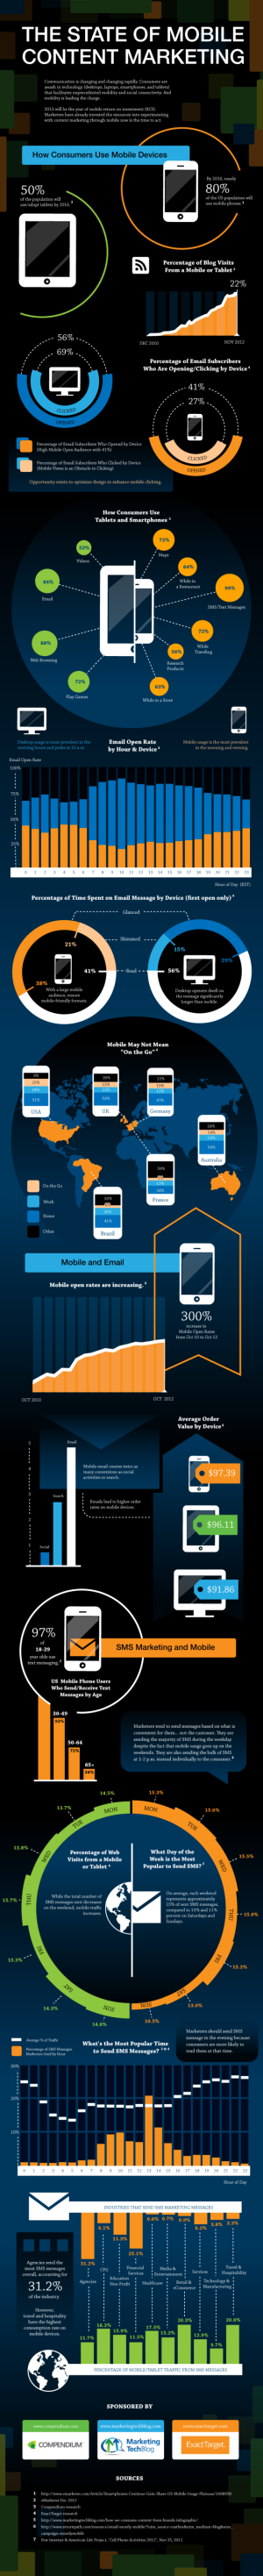 wpid-mobile-content-marketing-infographic